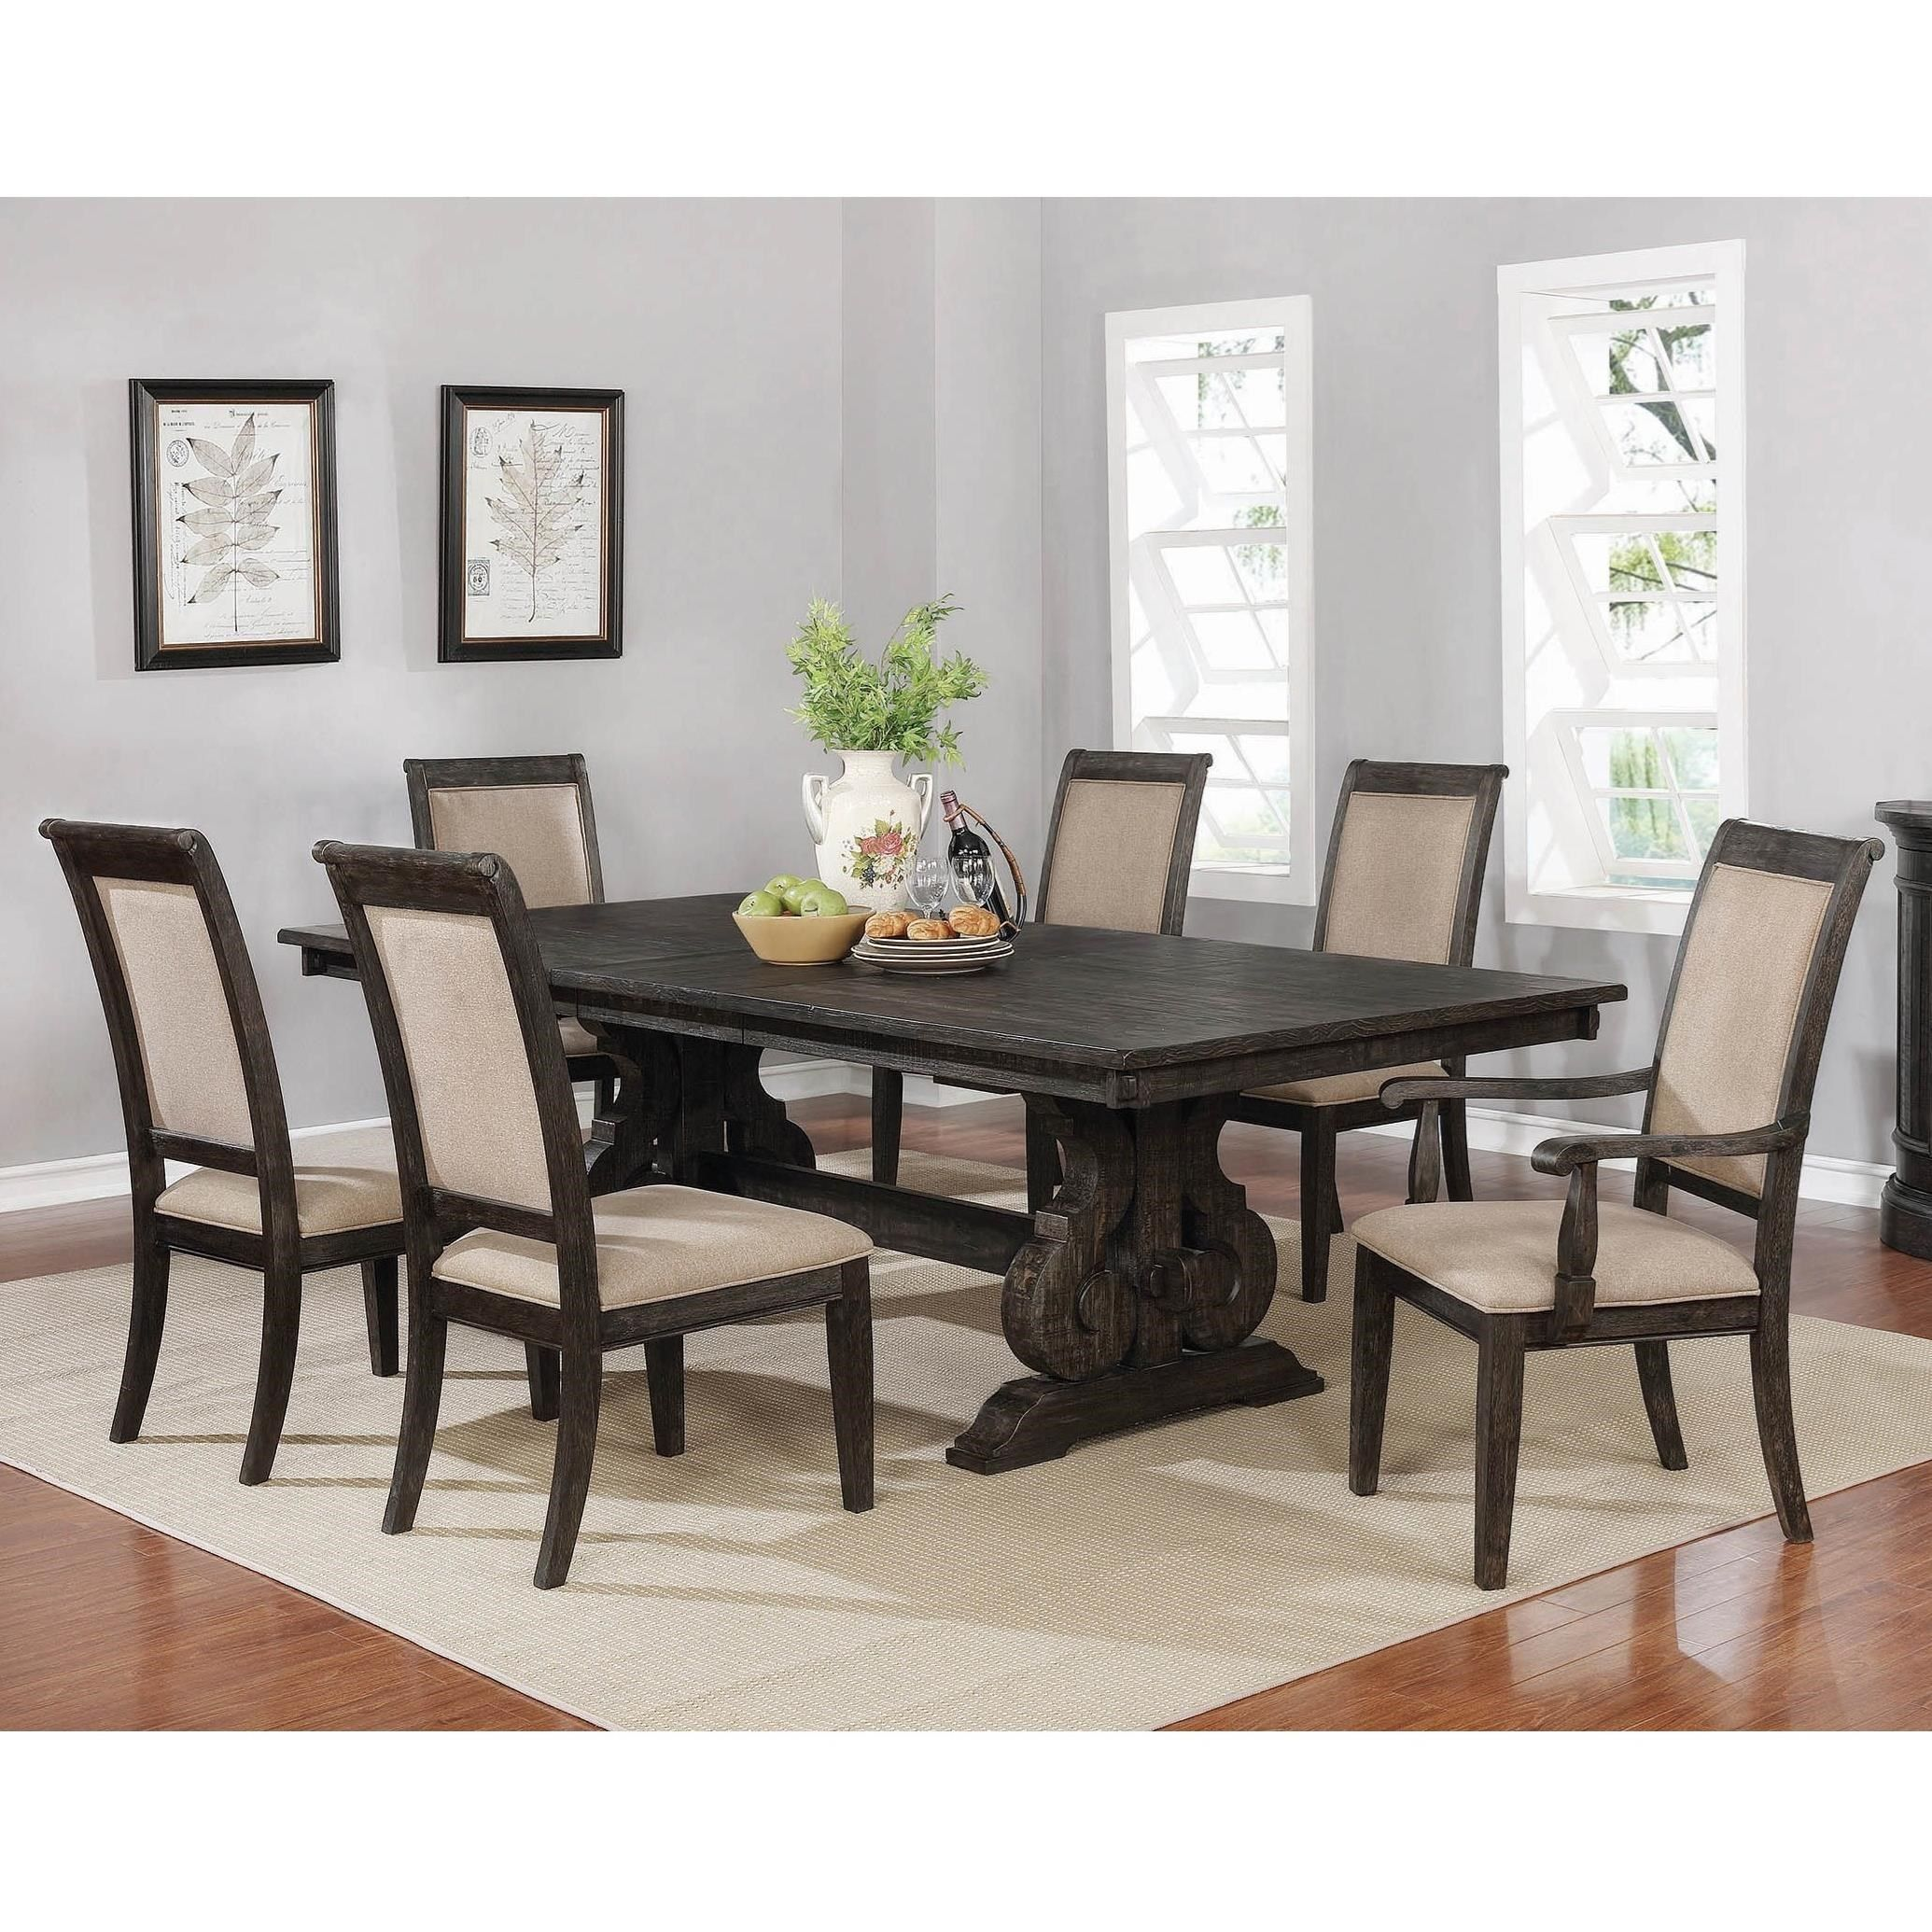 Whitney 7 Piece Table And Chair Set By Coaster At Northeast Factory Direct Dining Table Black Dining Table Chairs Dining Table